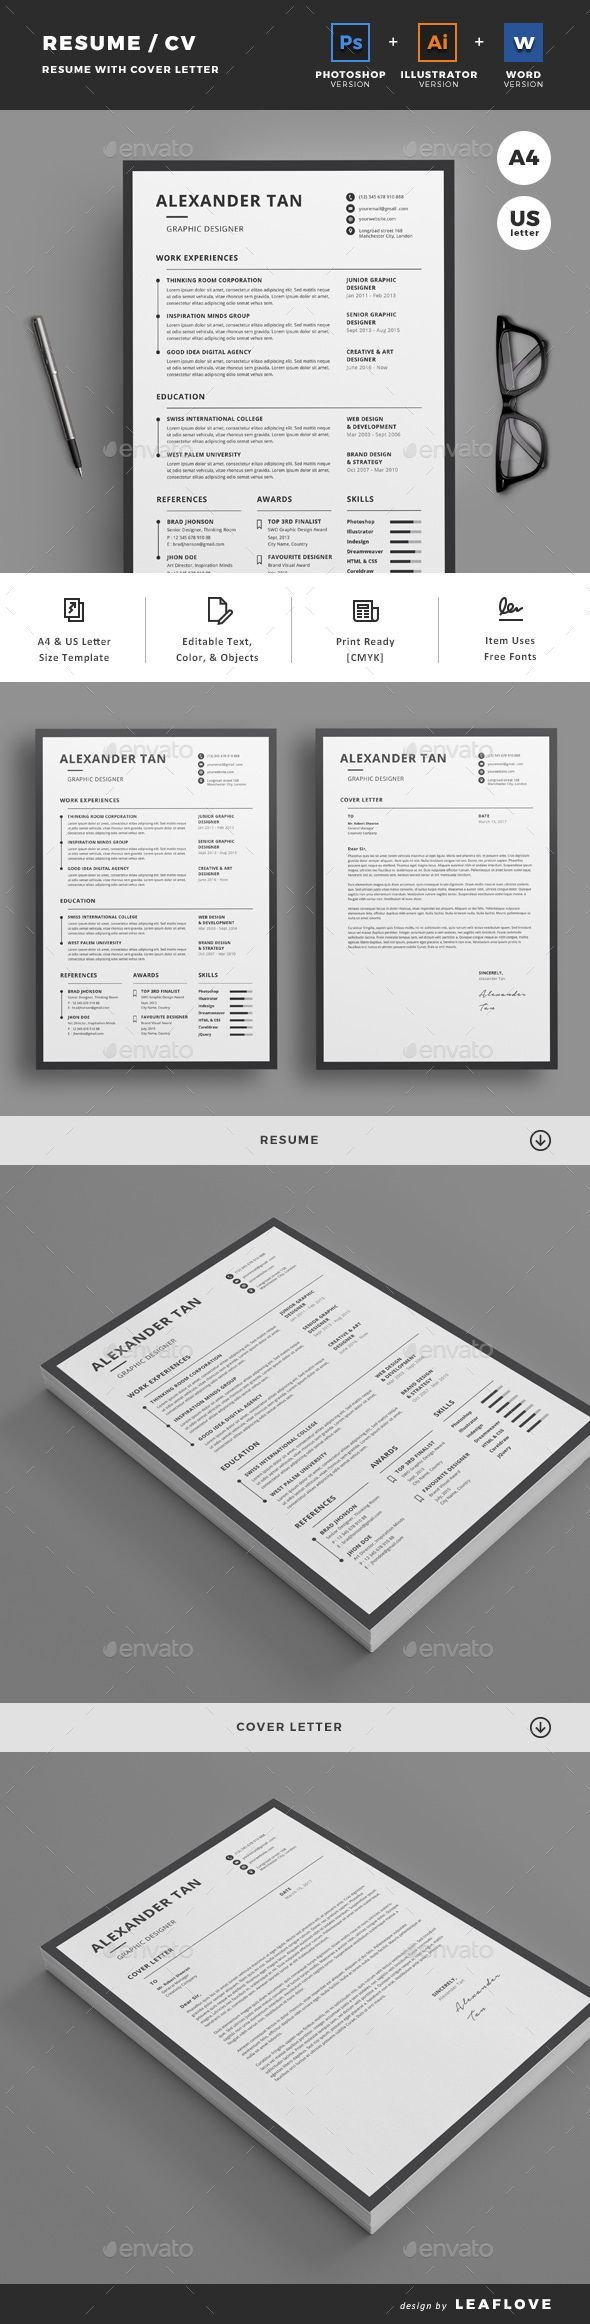 Chronological Resume Samples%0A CV   Resumes  Stationery